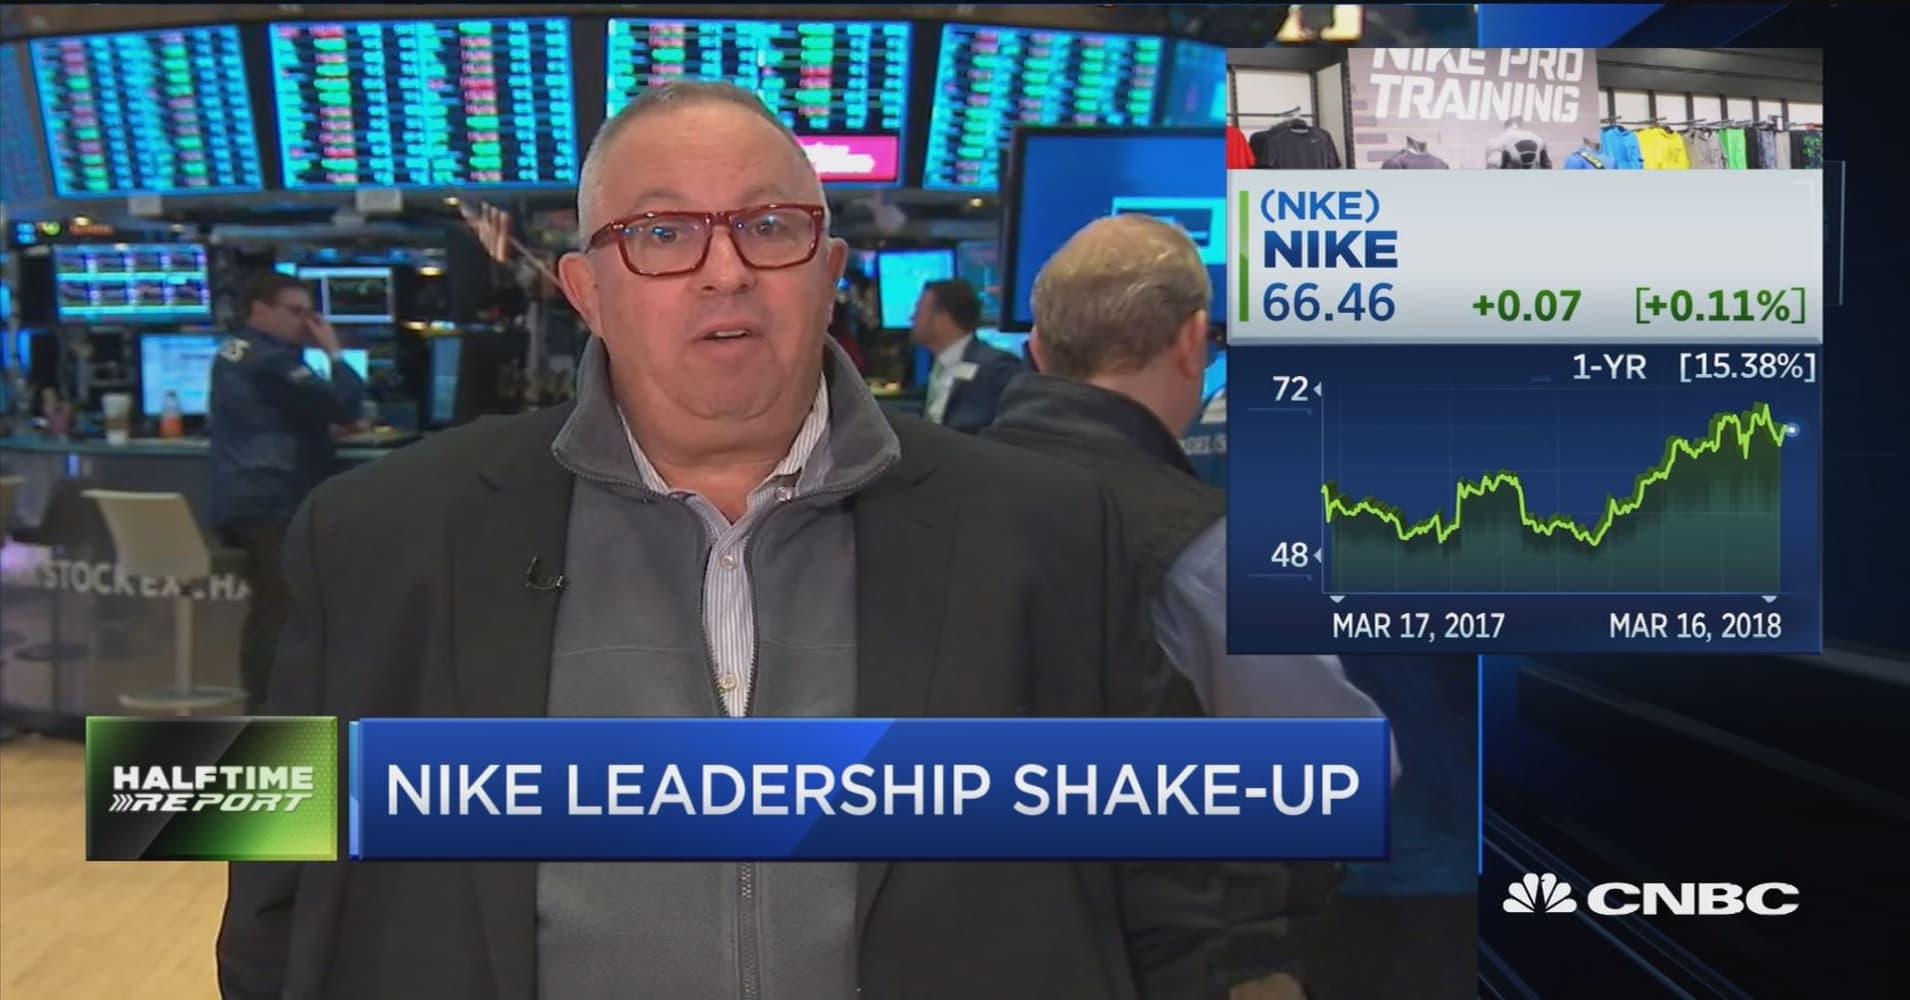 Swift reshuffling at Nike is cause for concern says analyst